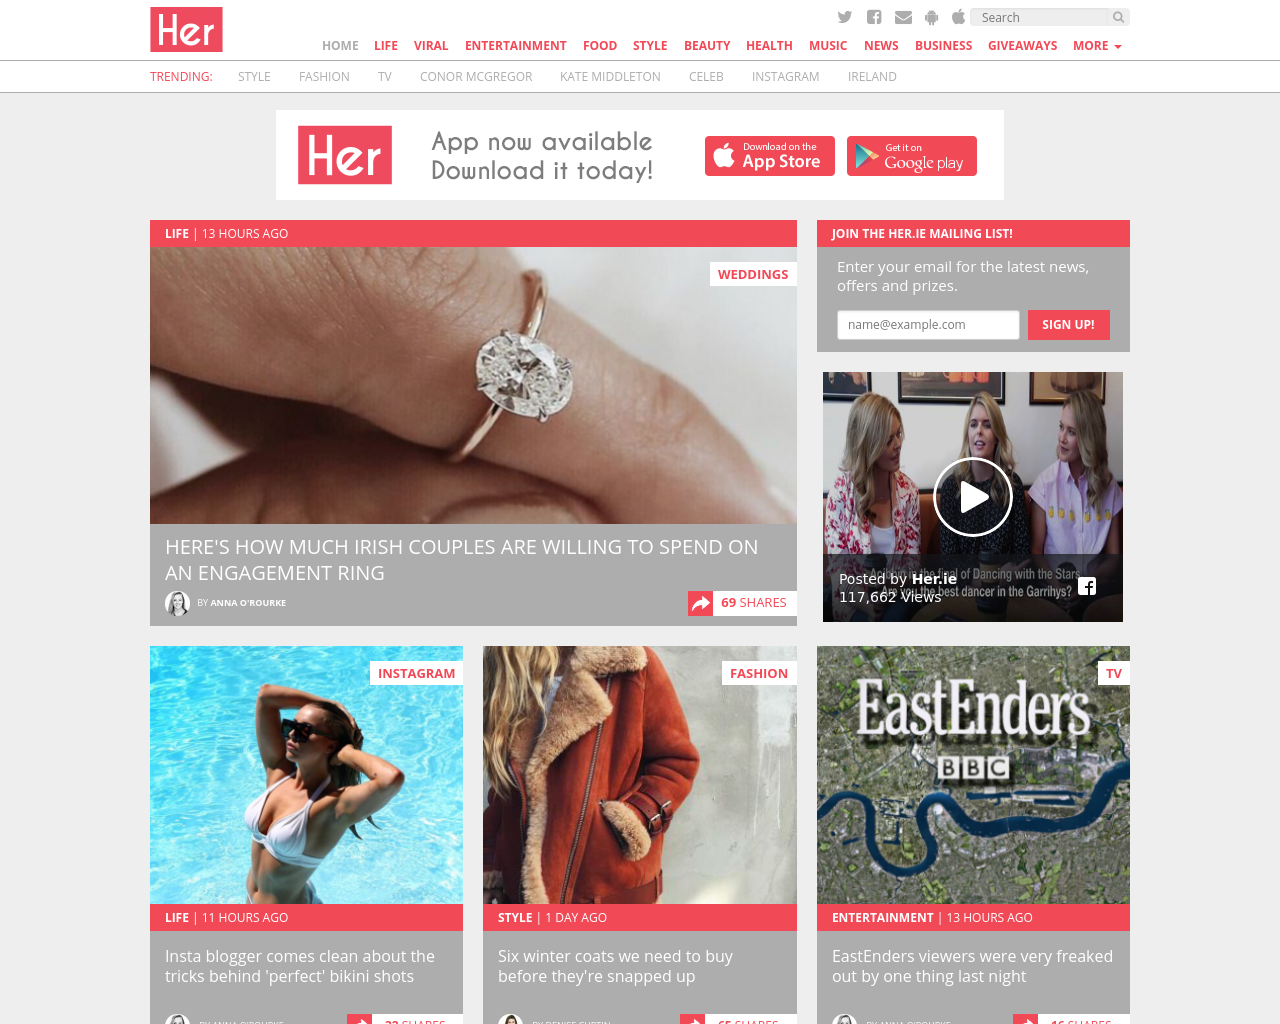 Her.ie-Advertising-Reviews-Pricing